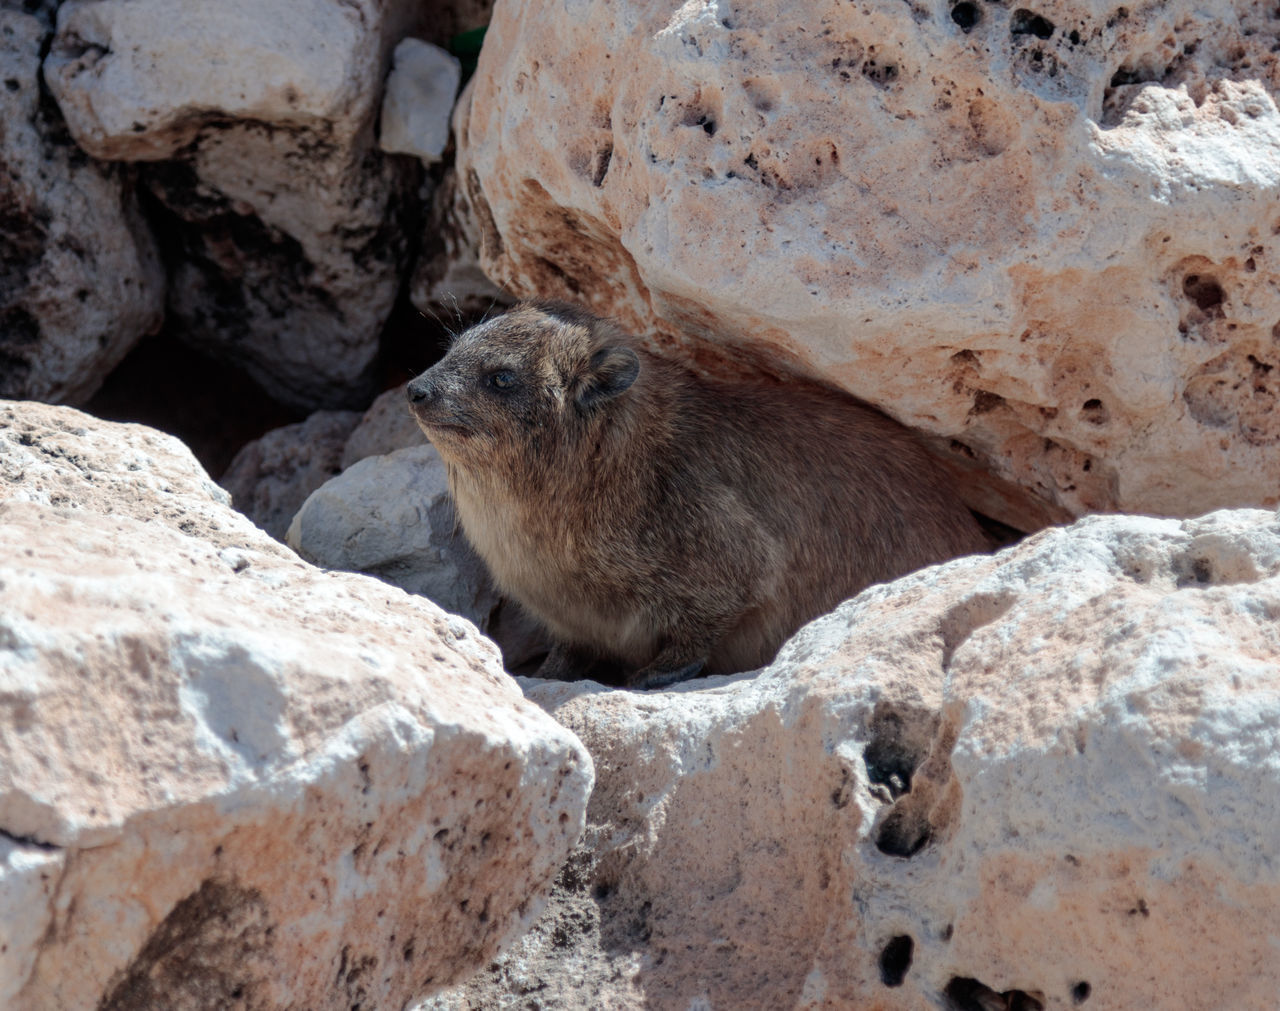 mountain rabbit sitting between rocks on the morning in Rosh Hanikra, Israel Adventure Animal Wildlife Anxiety  Brown Burrow Close-up Day Fluffy Fur Hare Israel Mammal Mountain National Nature One Animal Outdoors Park, Rabbit Rock - Object Rodent Rosh Hanikra Sitting Small Stone